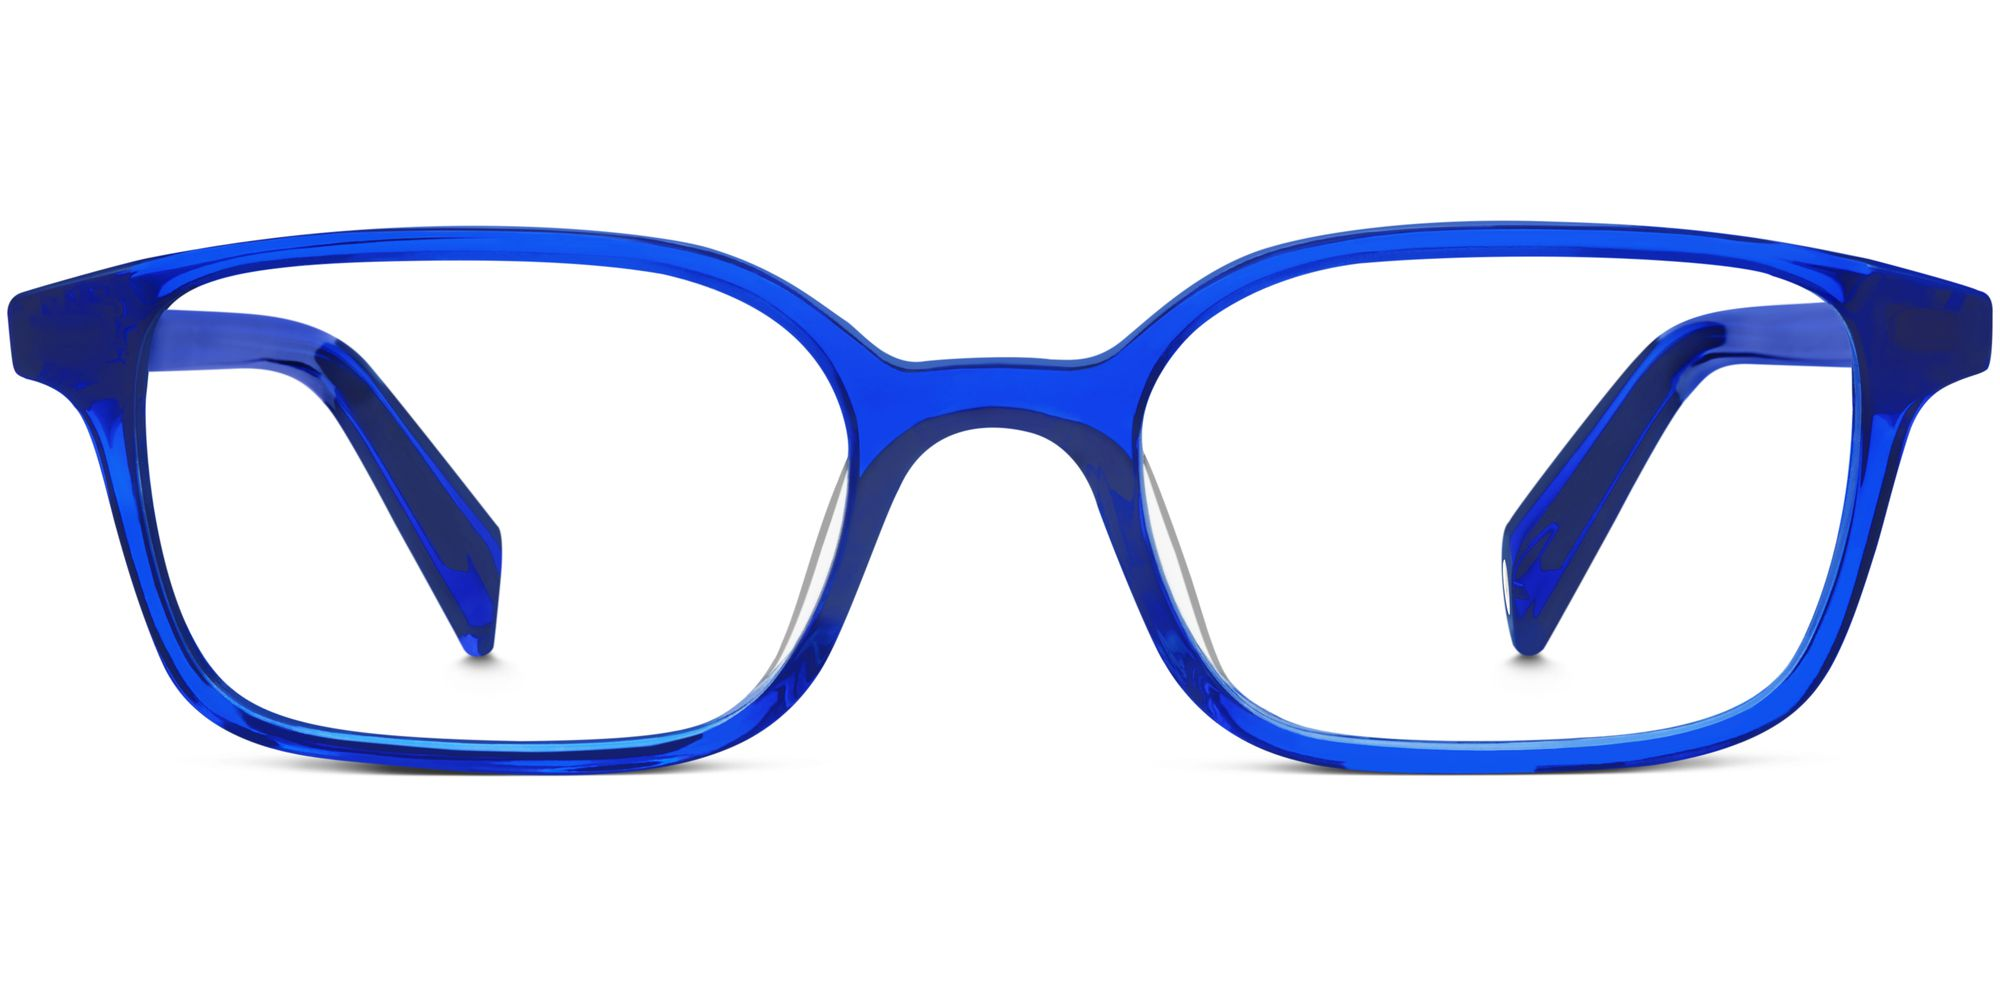 Bebe Blue Eyeglass Frames : Eyeglasses - Marina Blue Eyewear glasses and contact ...